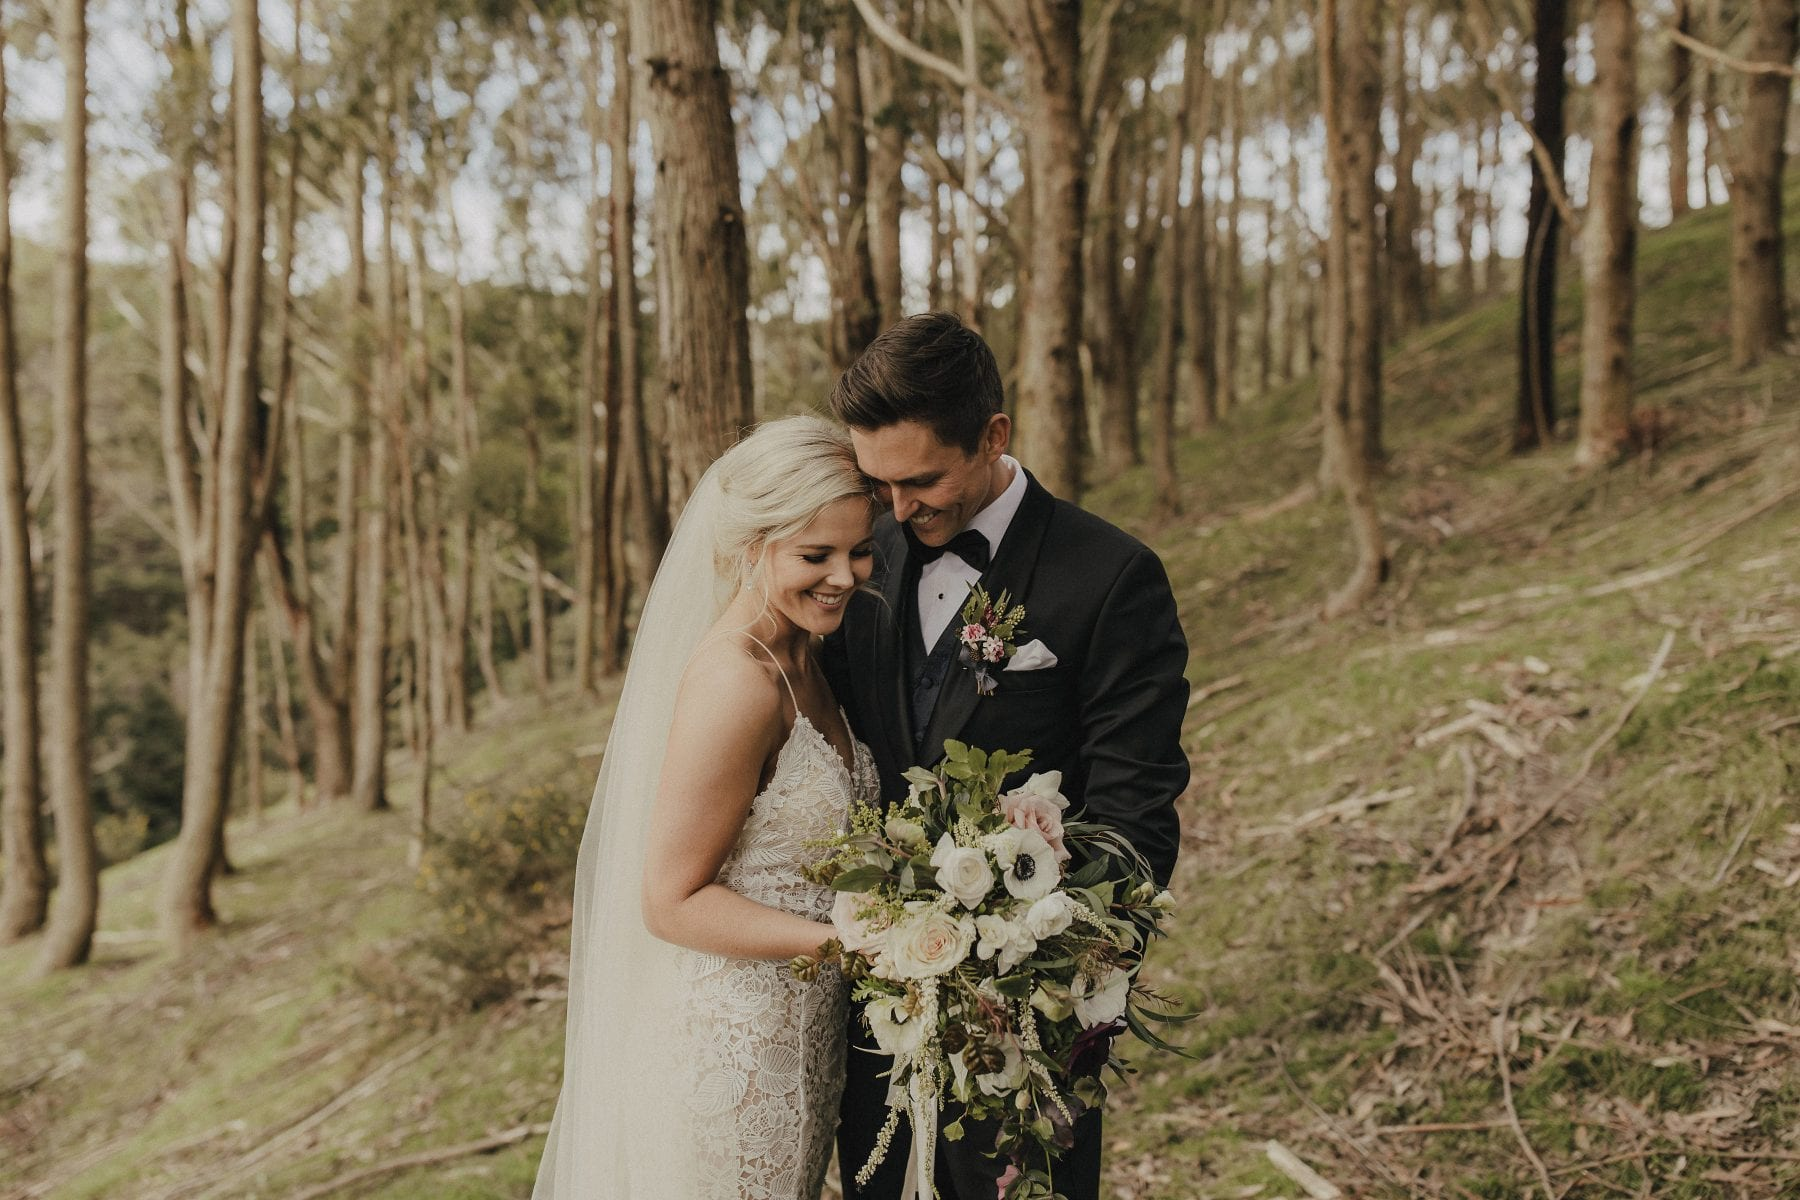 On My Hand Wedding flowers for real wedding - Gert and Trent in Kauri Bay Boomrock - bride and groom in woods looking at bouquet